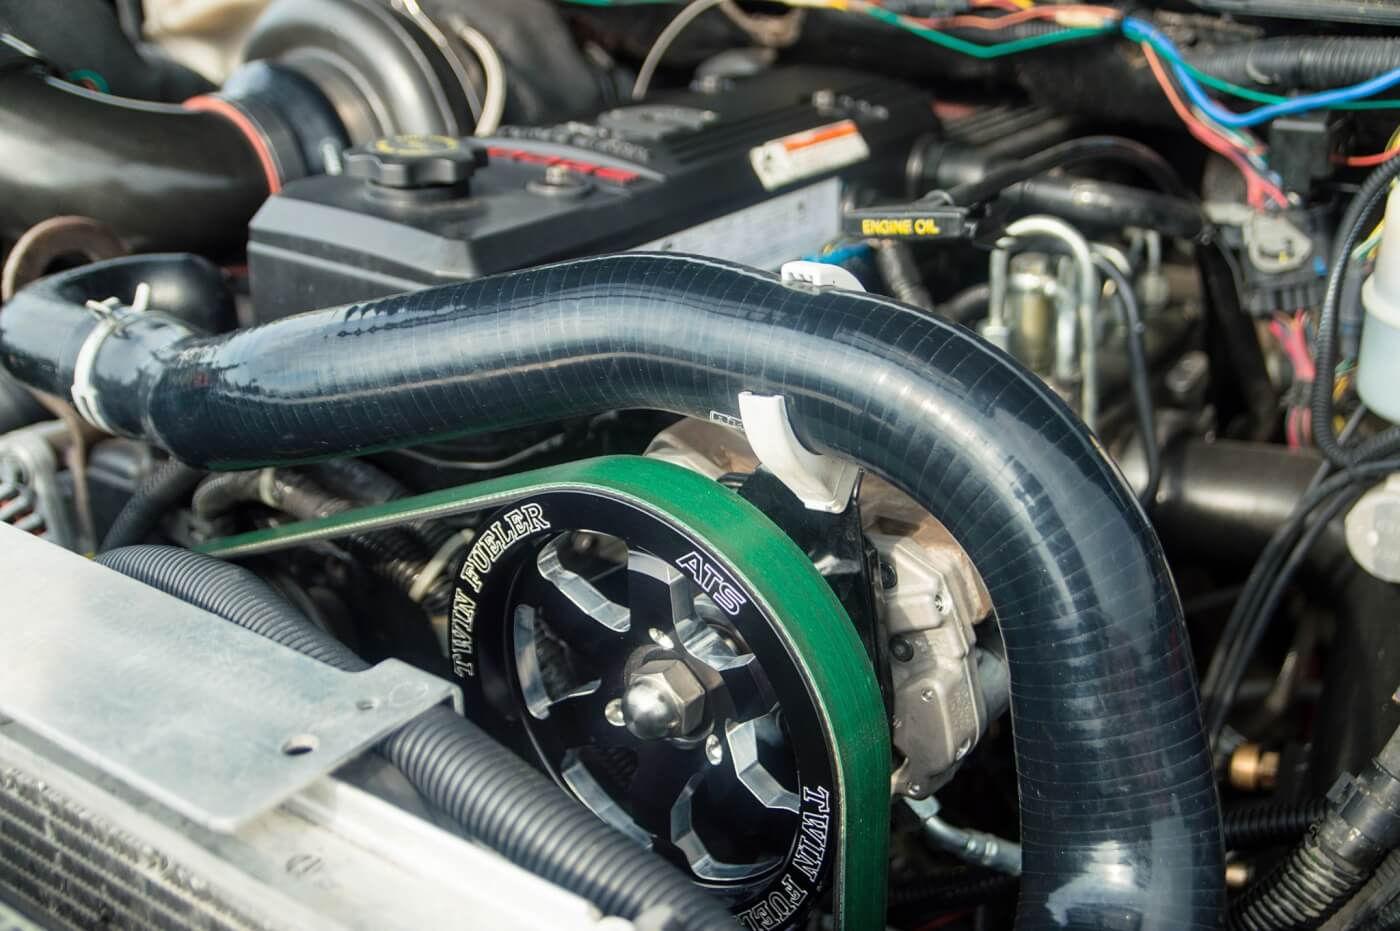 Thanks to a second CP3, Brett is able to take full advantage of the 200-percent over Exergy Performance injectors he's running. A 12mm Exergy pump resides in the factory location. With the belt-driven Sportsman pump (also from Exergy) in the mix, more than 200 additional horses were gained over running just the 12mm unit.